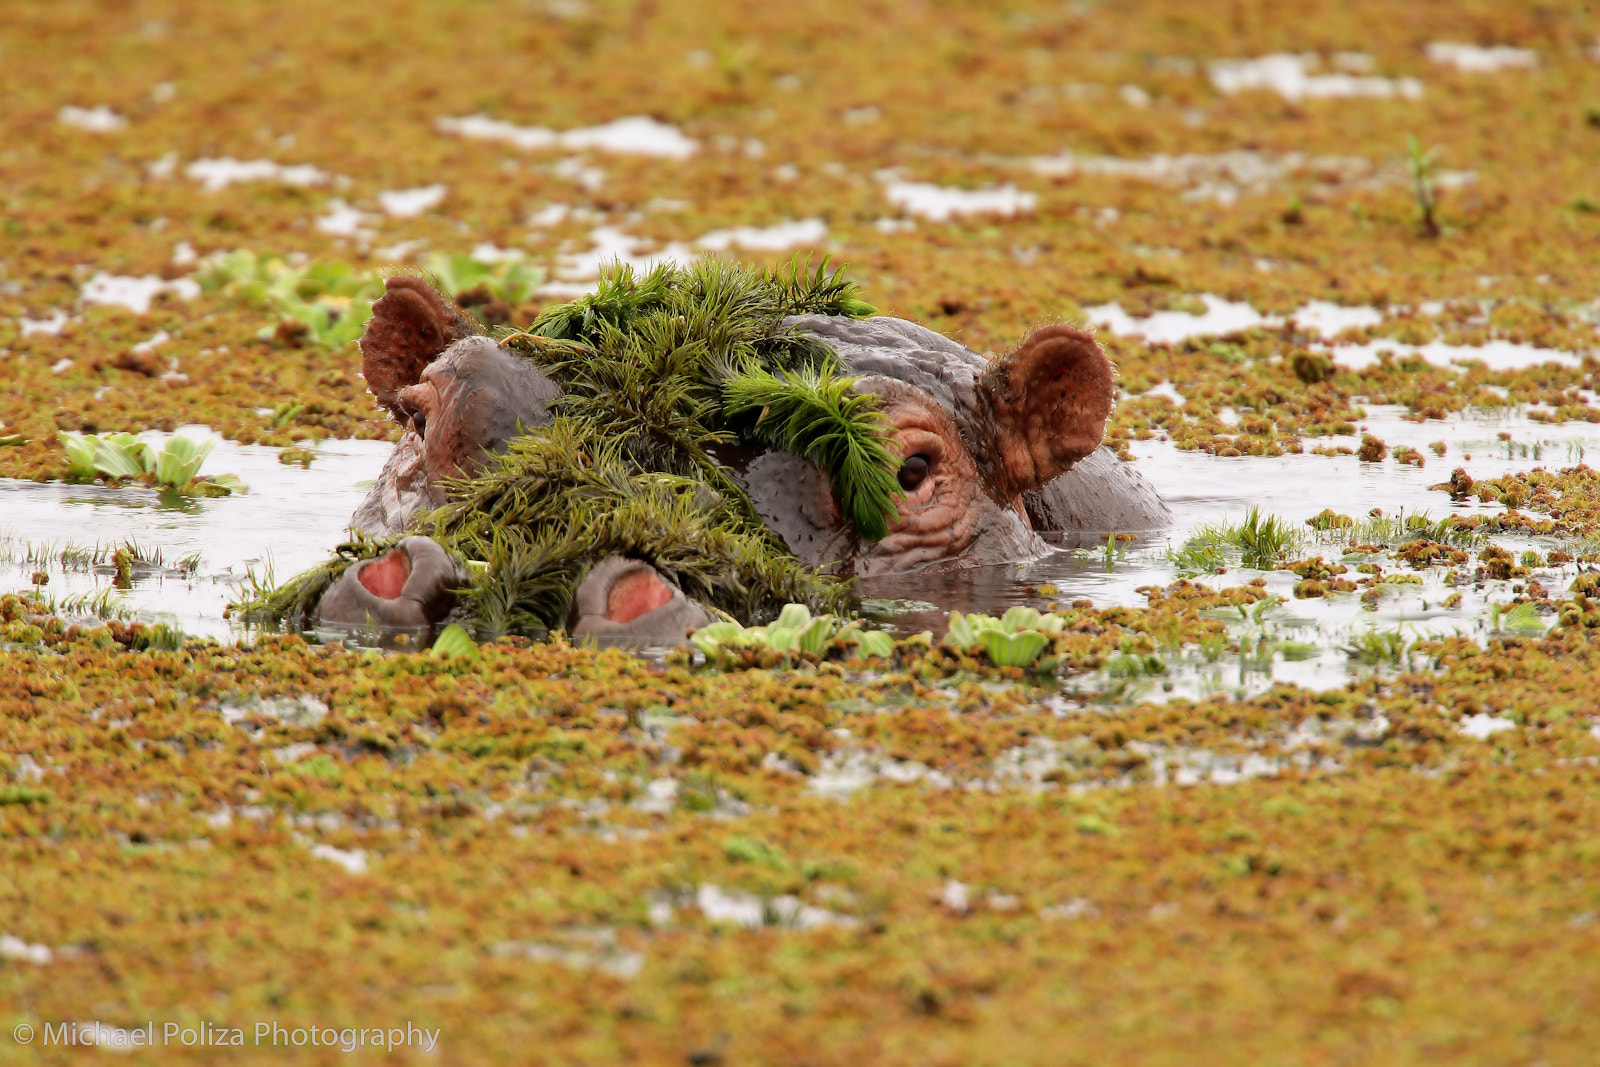 Photograph Hippo Under Cover by Michael Poliza on 500px